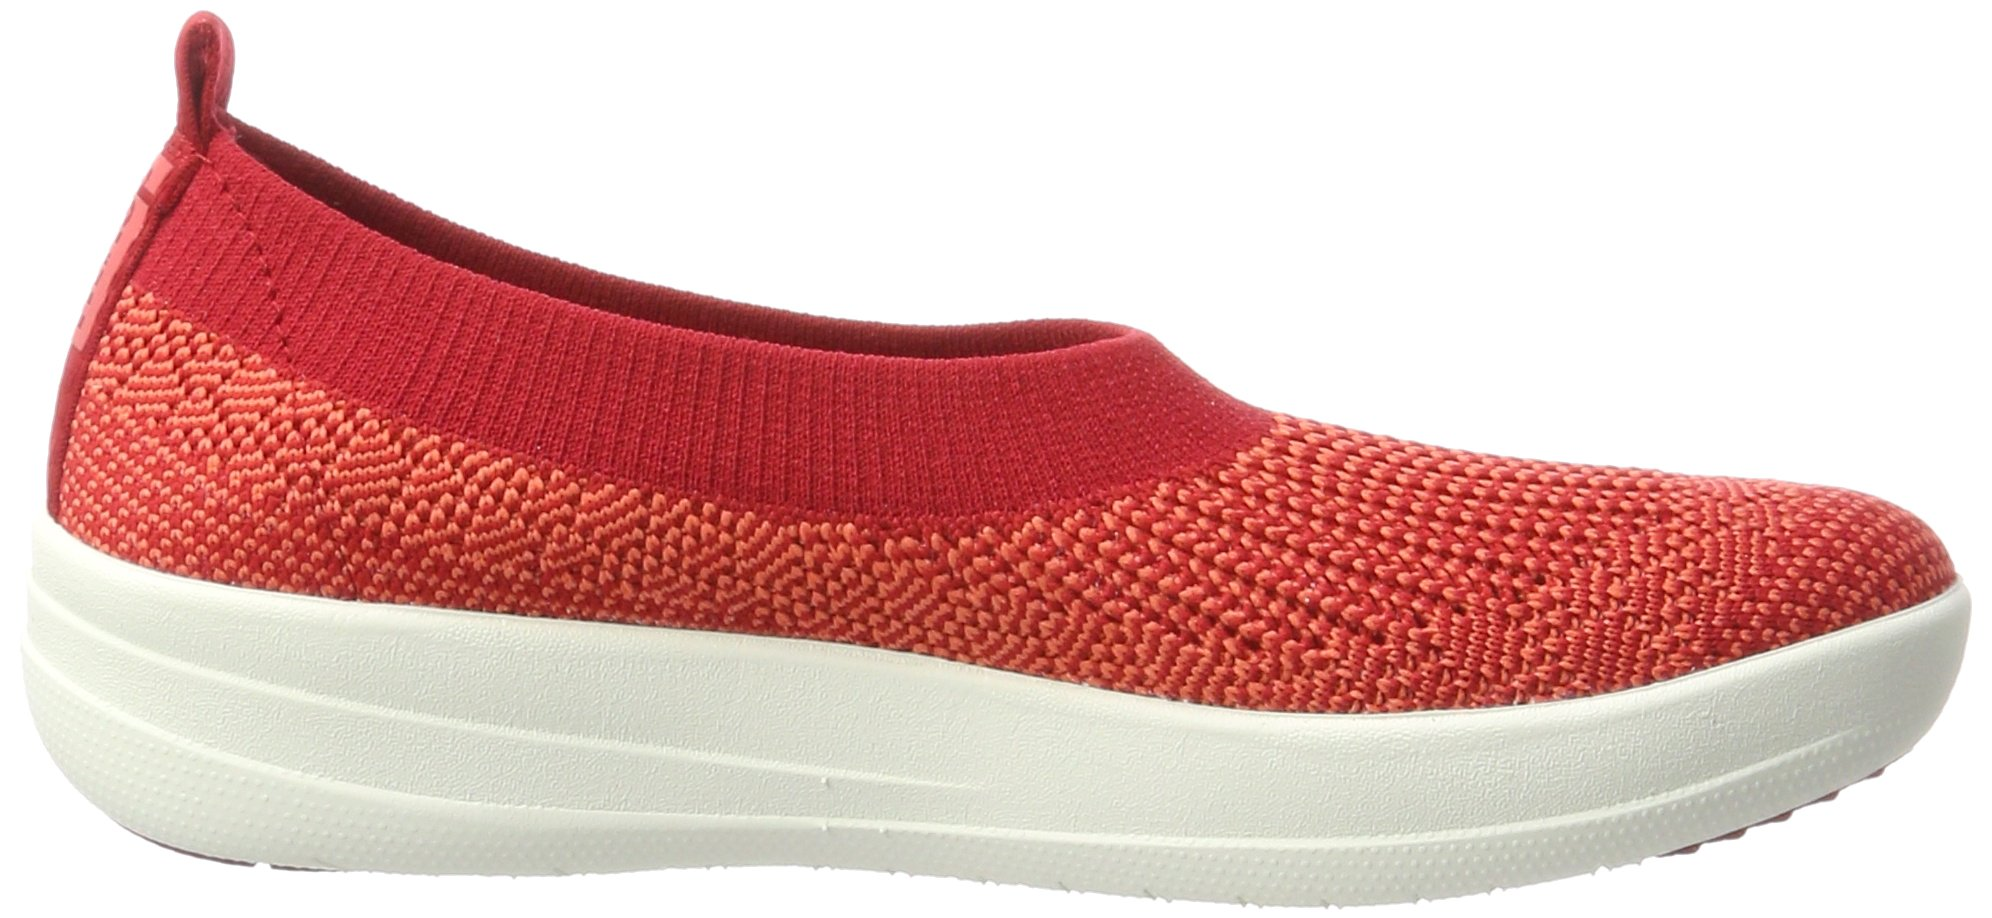 Fitflop H95 Women's Uberknit™ Slip-On Ballerinas, Classic Red - 8.5 by FitFlop (Image #5)